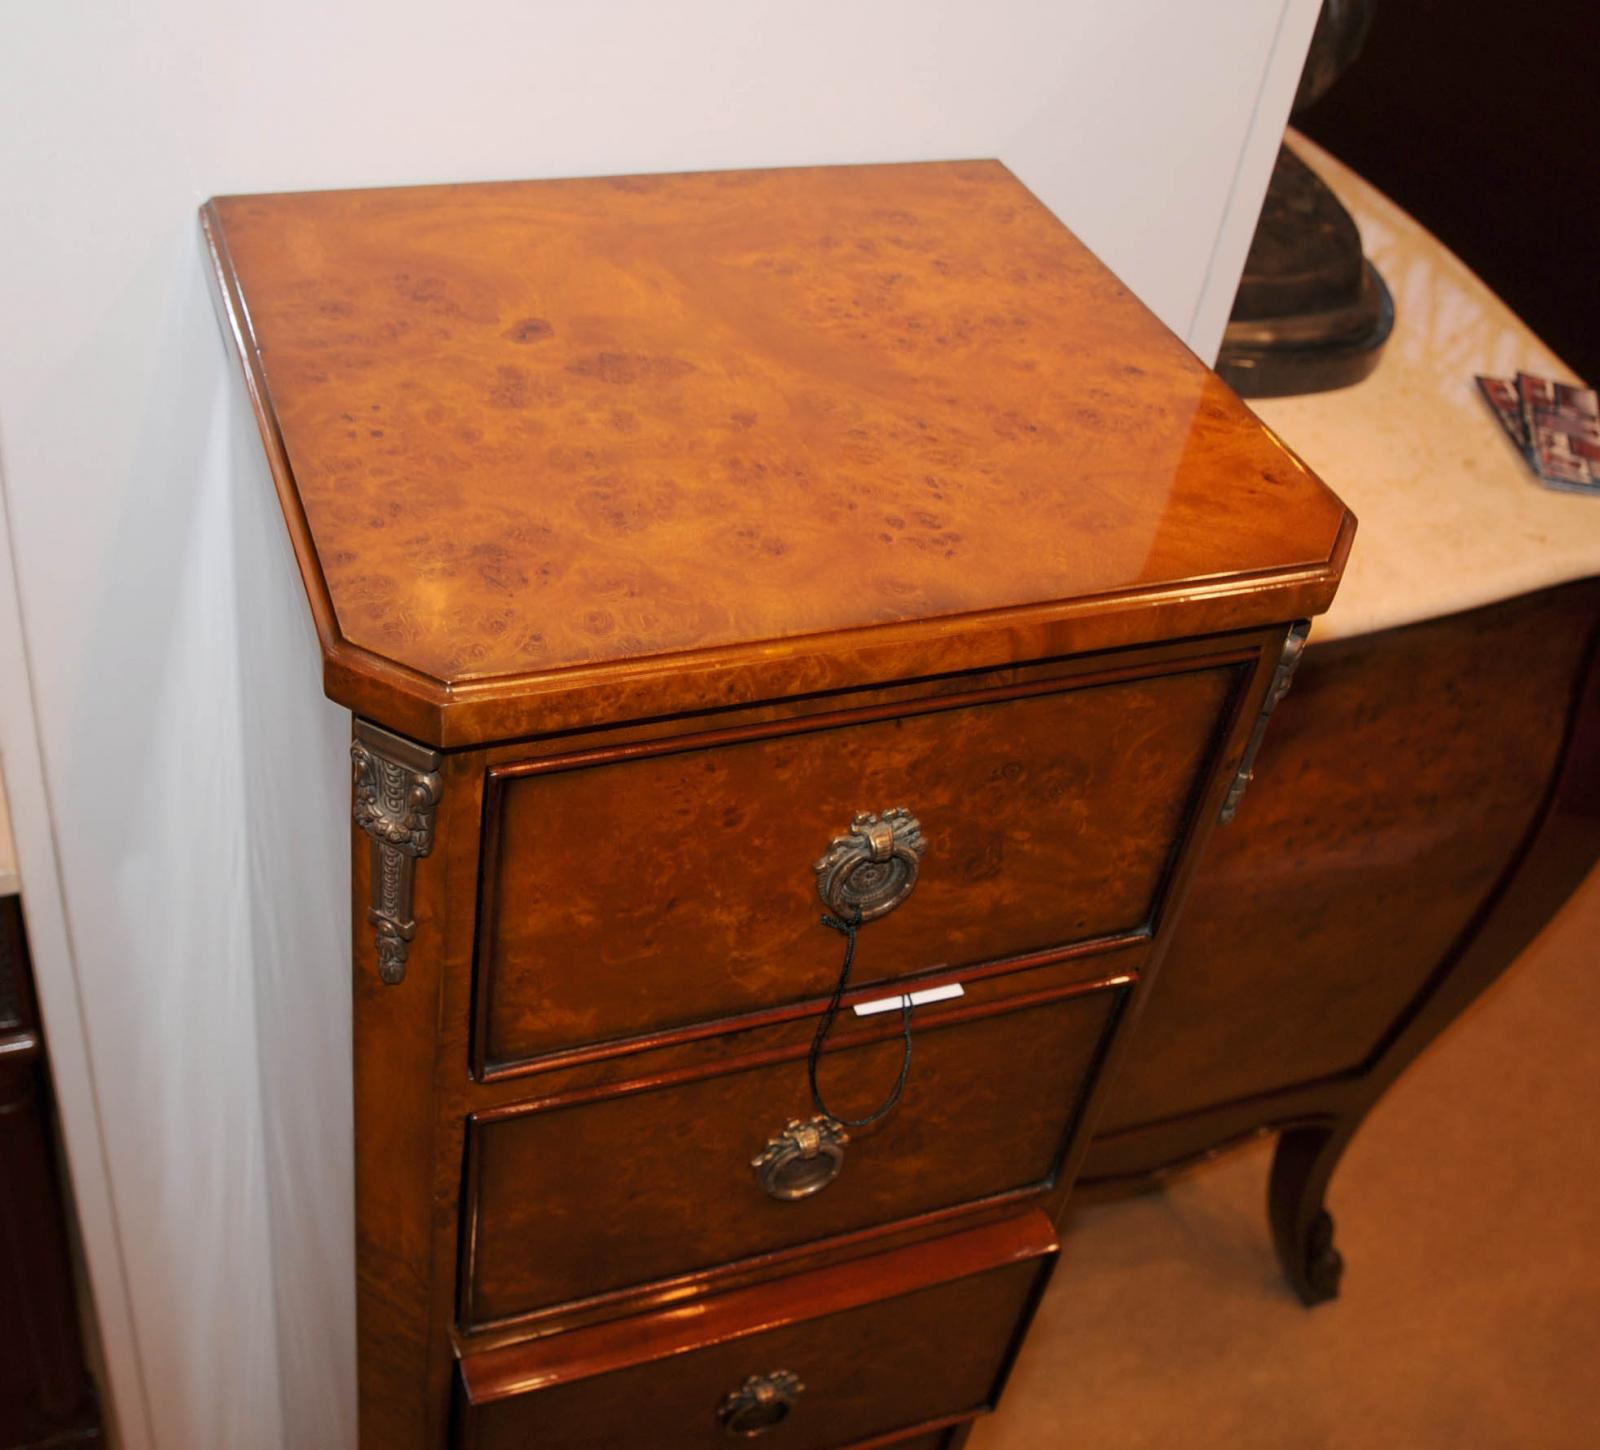 #BC4908 Details About Regency Walnut Lingerie Commode Chest Drawers Tall Boy with 1600x1450 px of Brand New Tall Lingerie Dresser 14501600 pic @ avoidforclosure.info